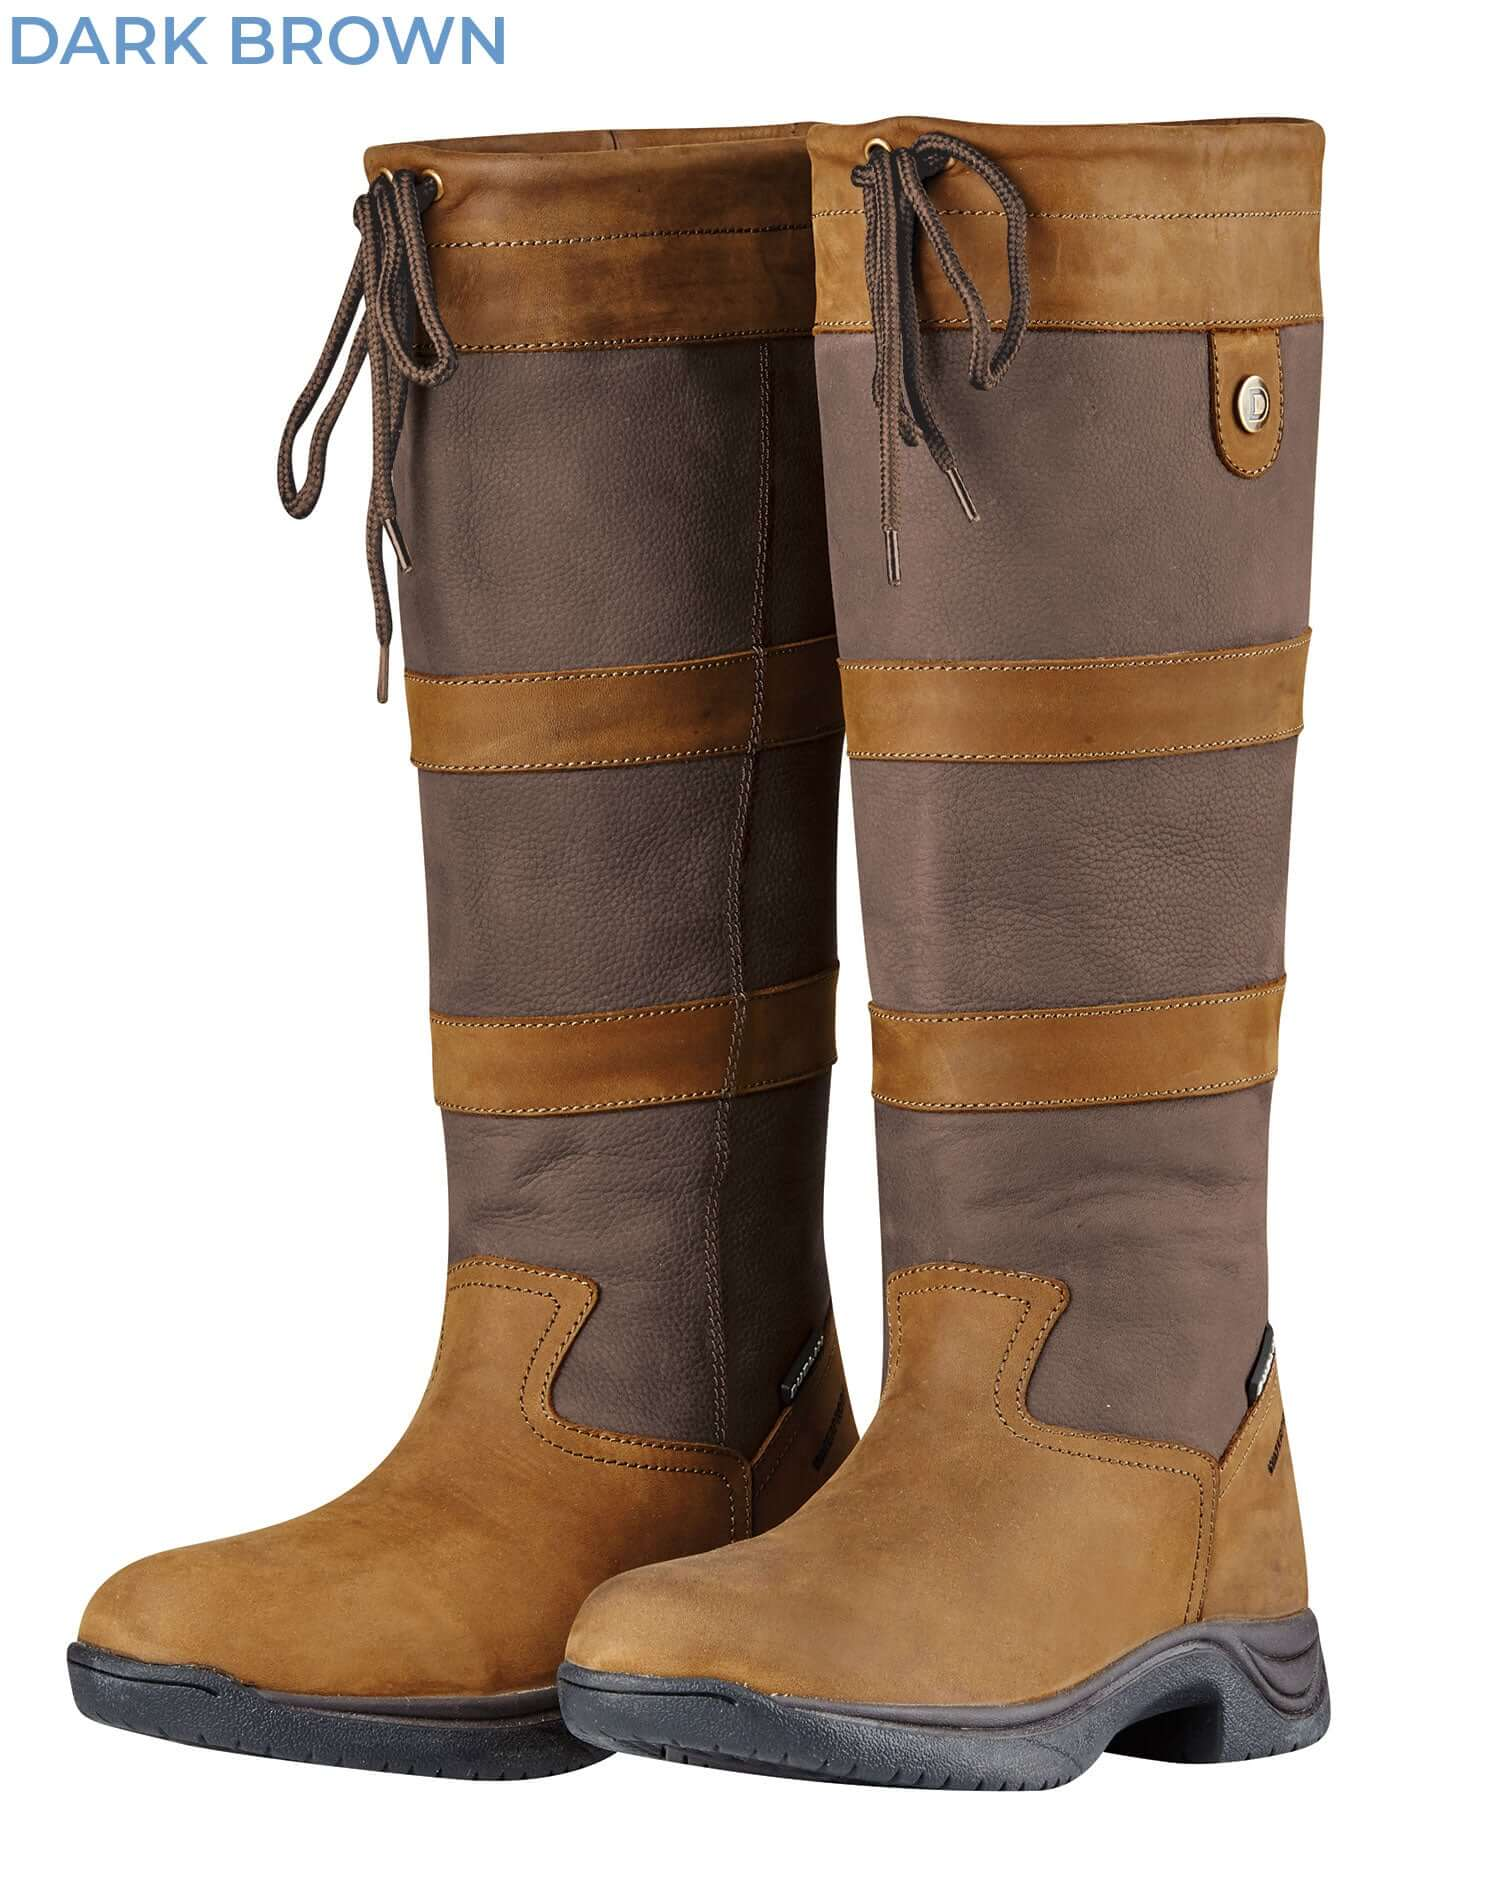 Dark Brown River III Luxury High Leg Leather Boot by Dublin